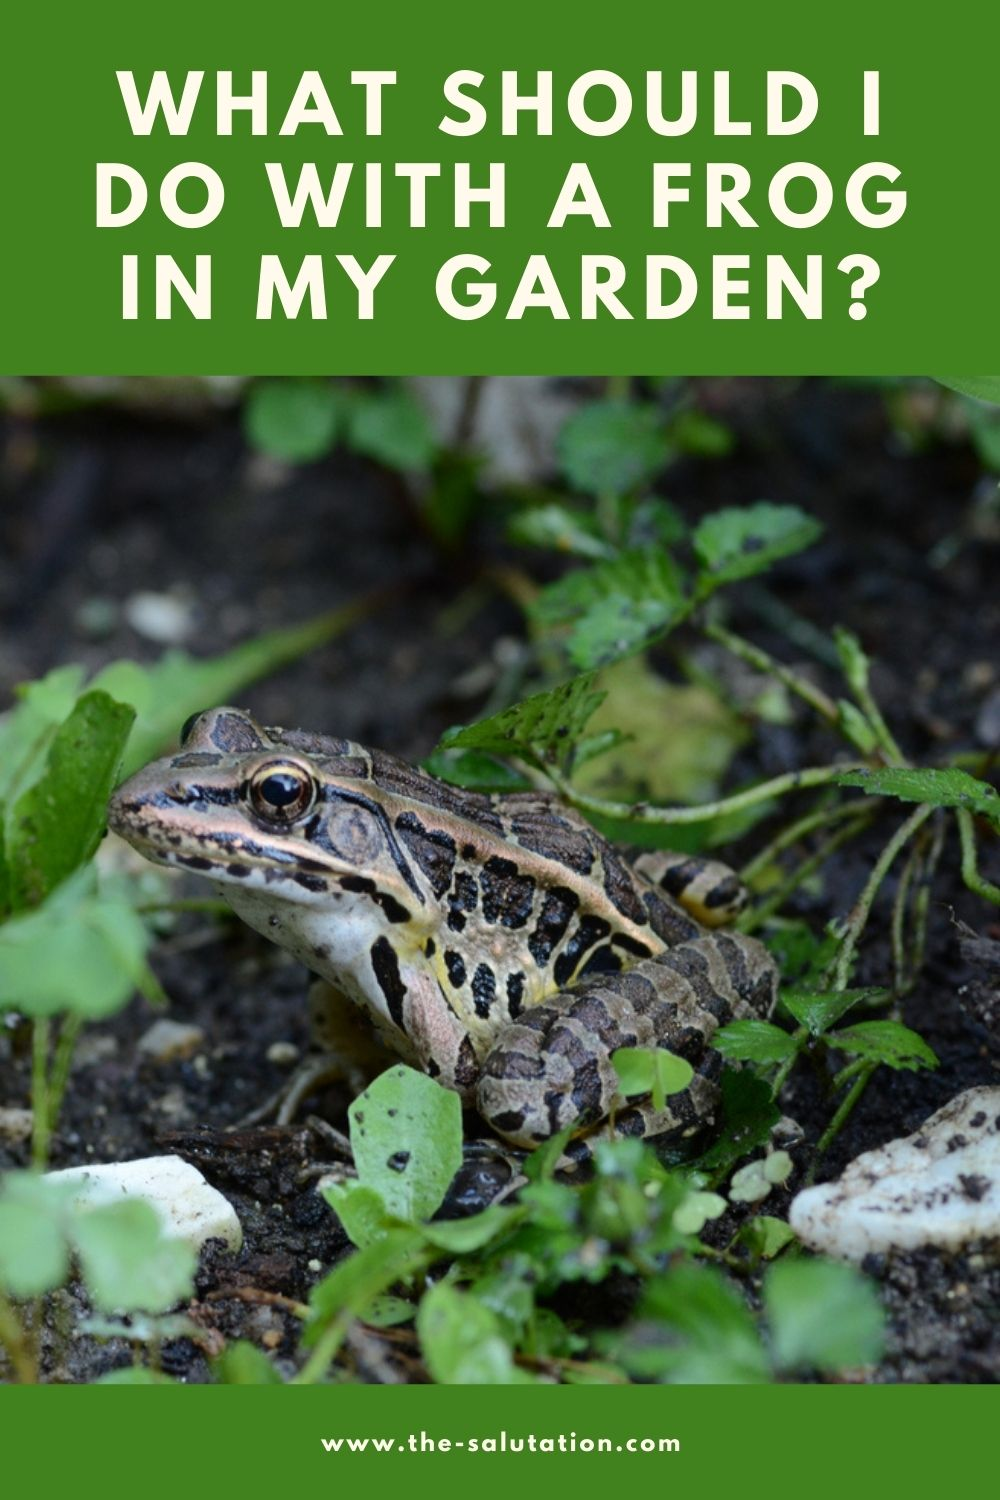 What Should I Do with a Frog in My Garden (13 Tips) 2